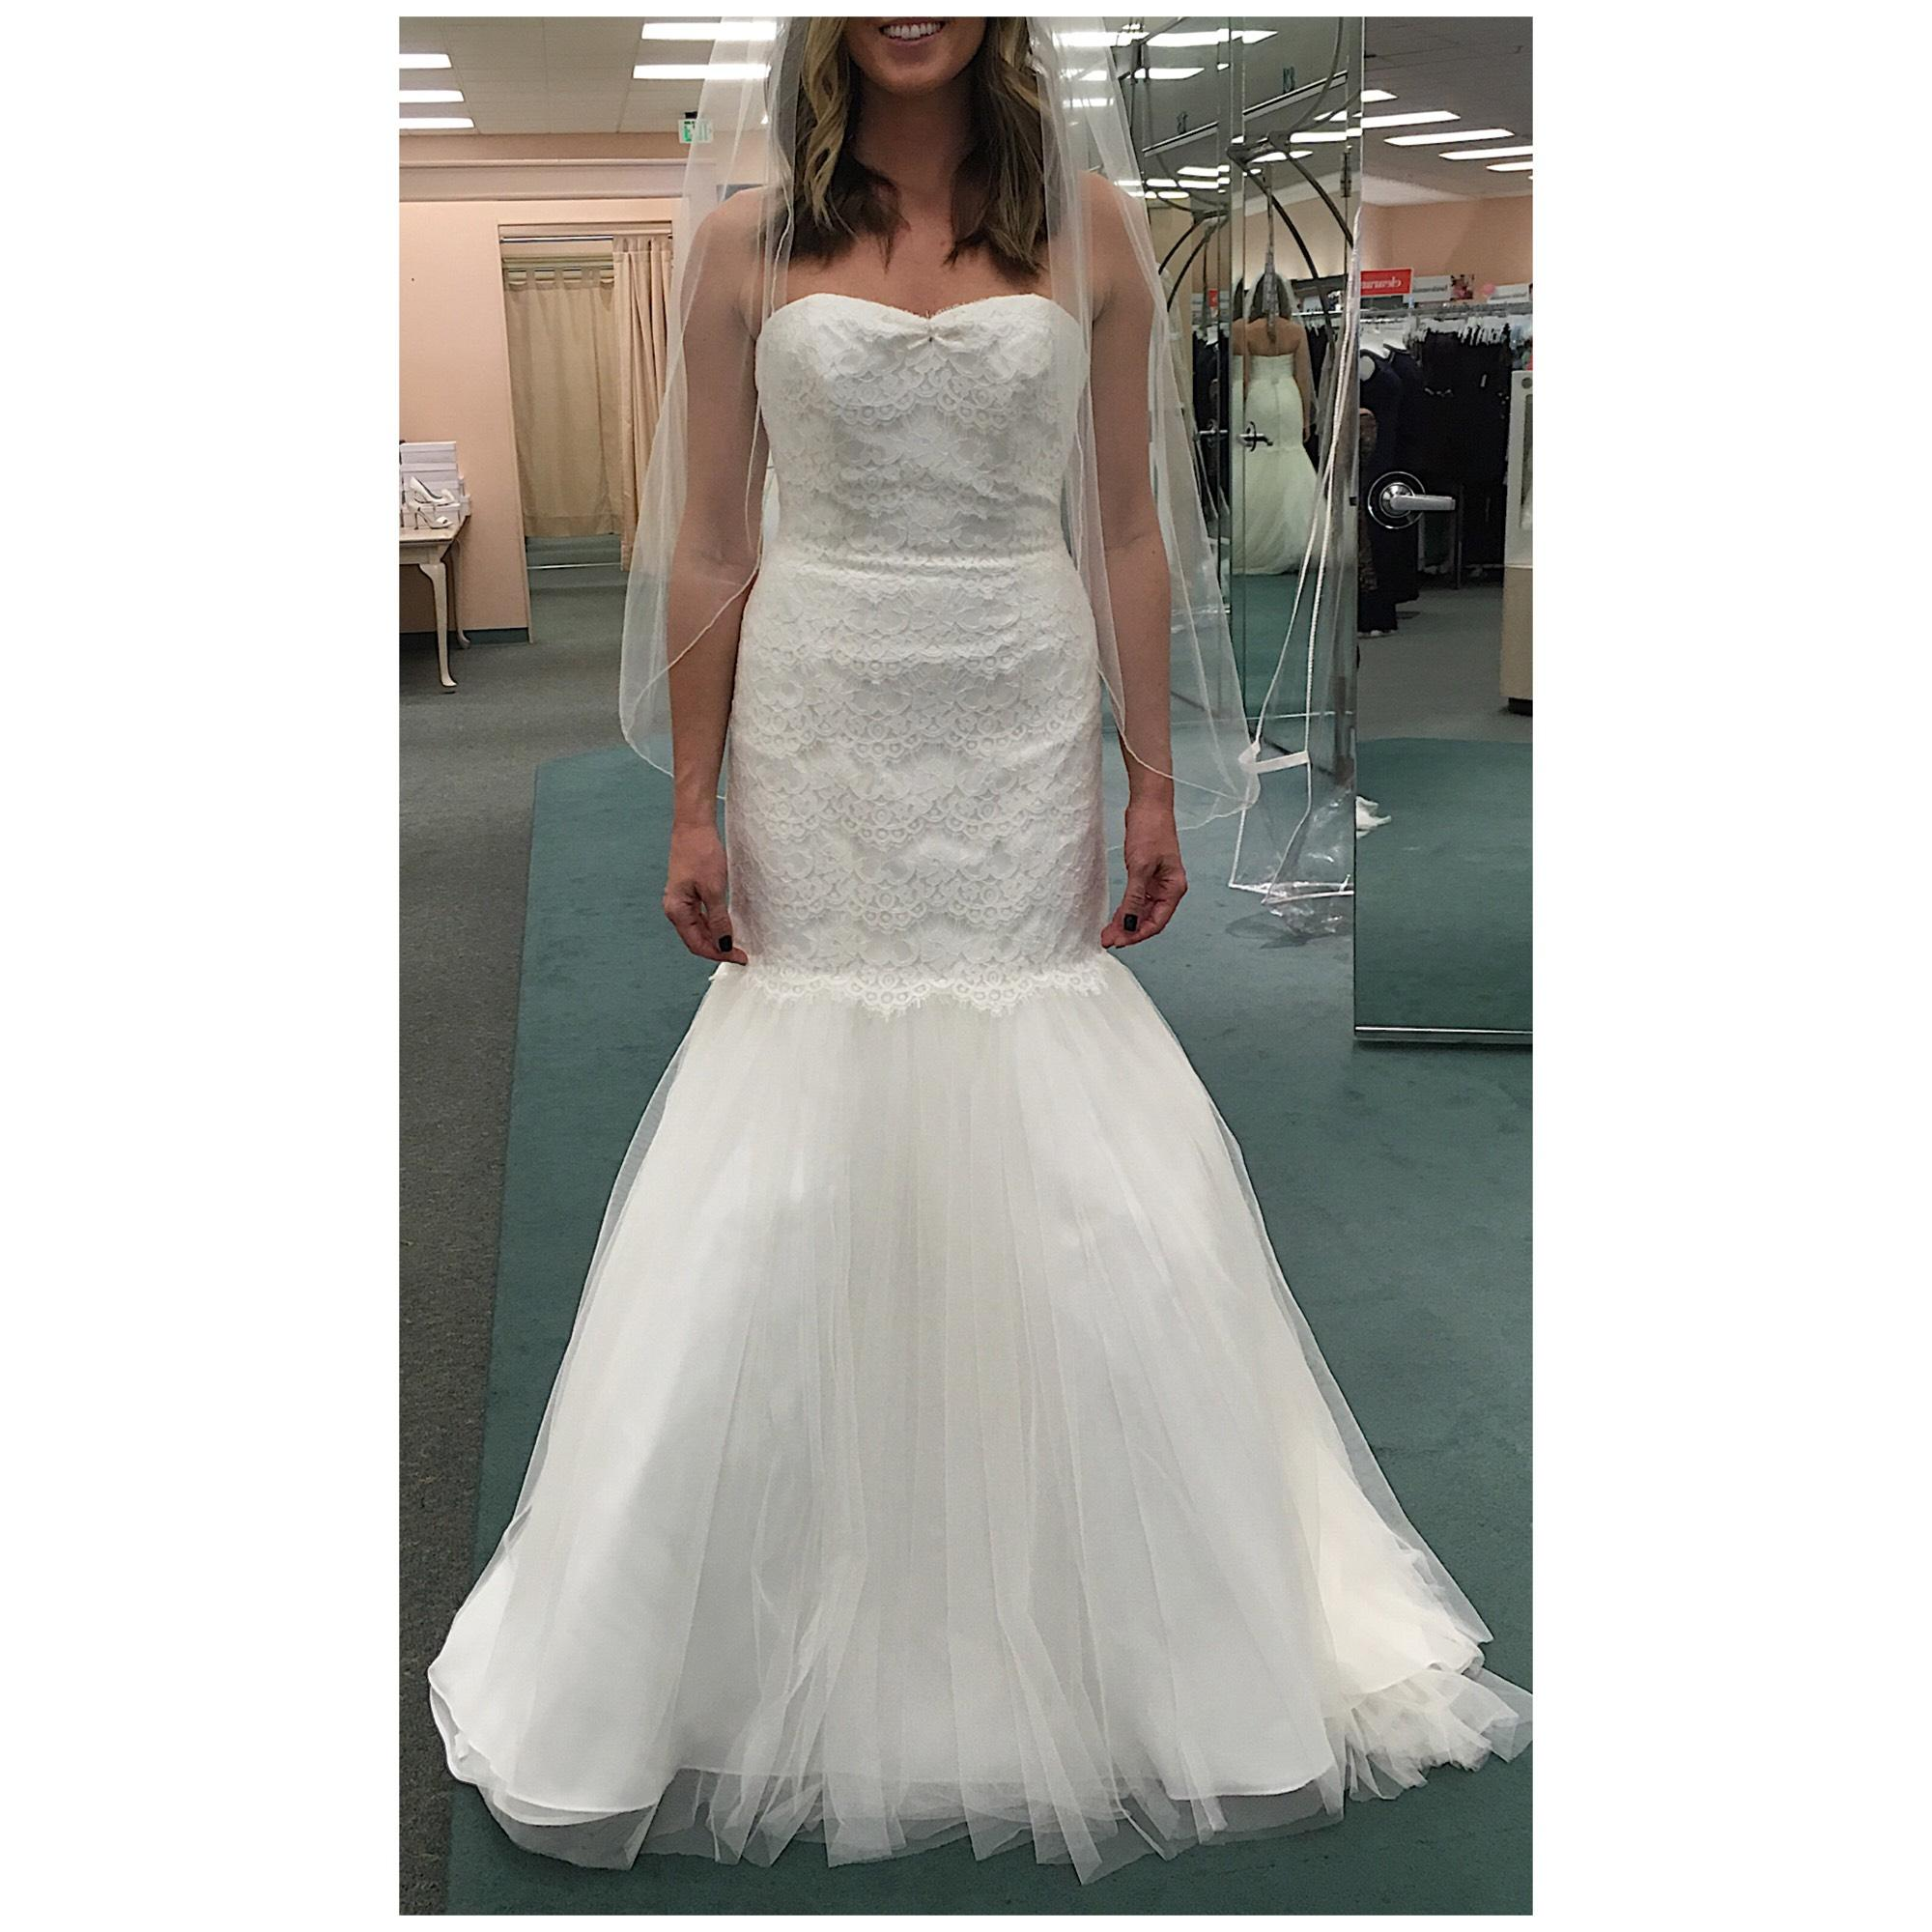 Lace Wedding Dress with Tulle Skirt